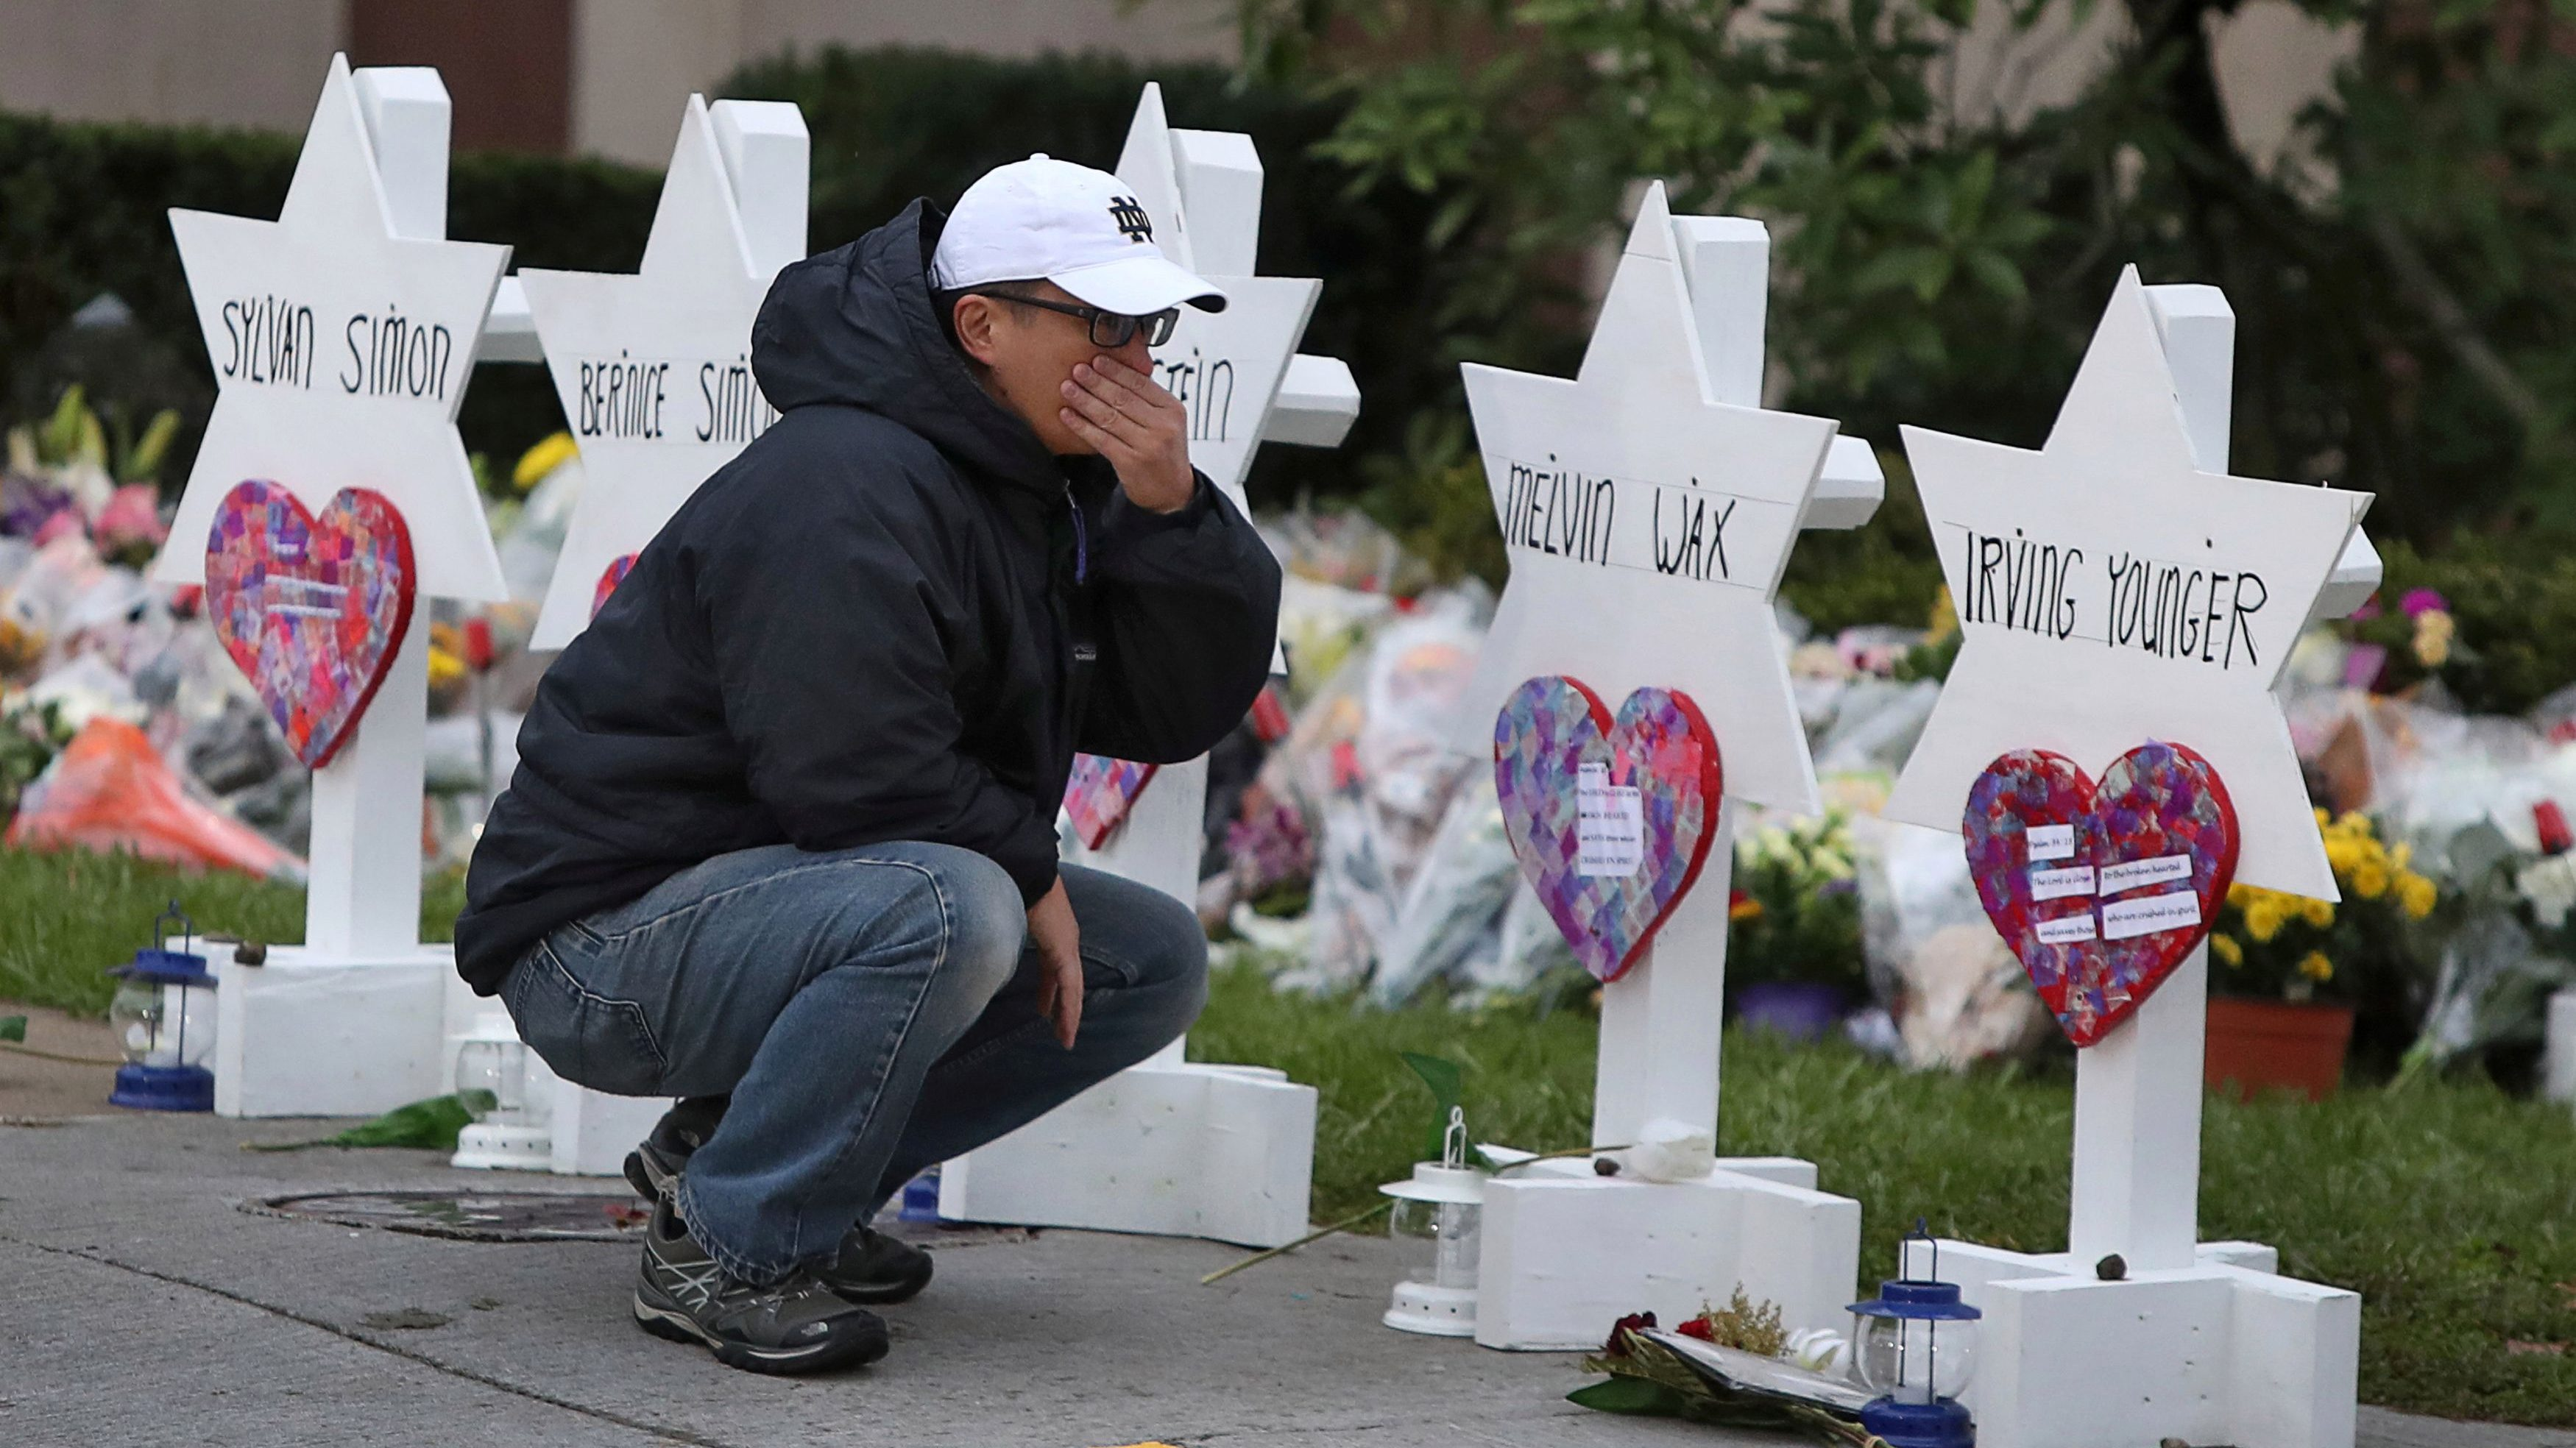 Gab, Facebook, and Twitter radicalize people like the Pittsburgh shooter